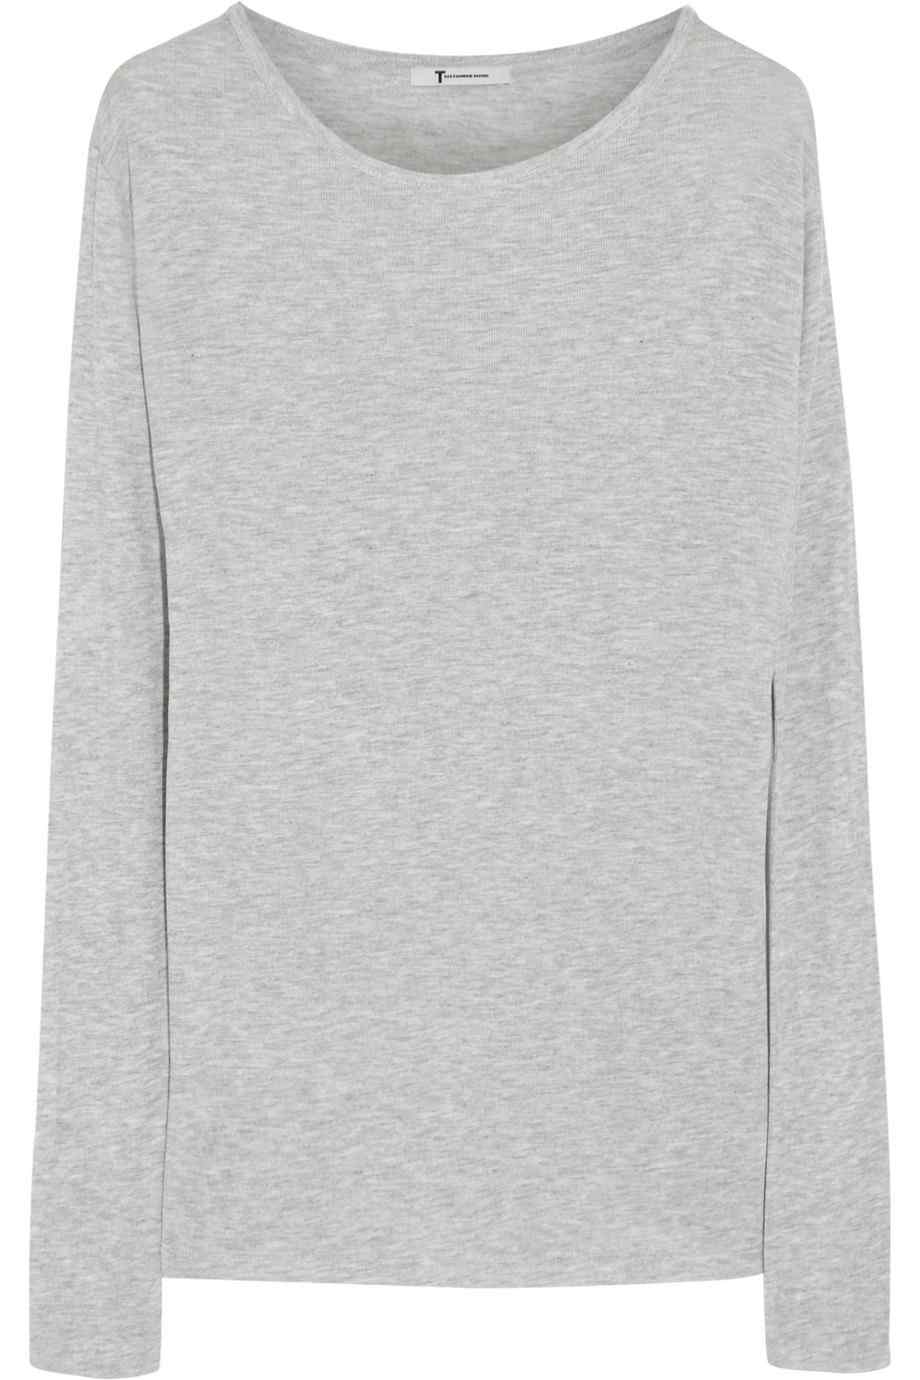 T by Alexander Wang - Pull (125 €)